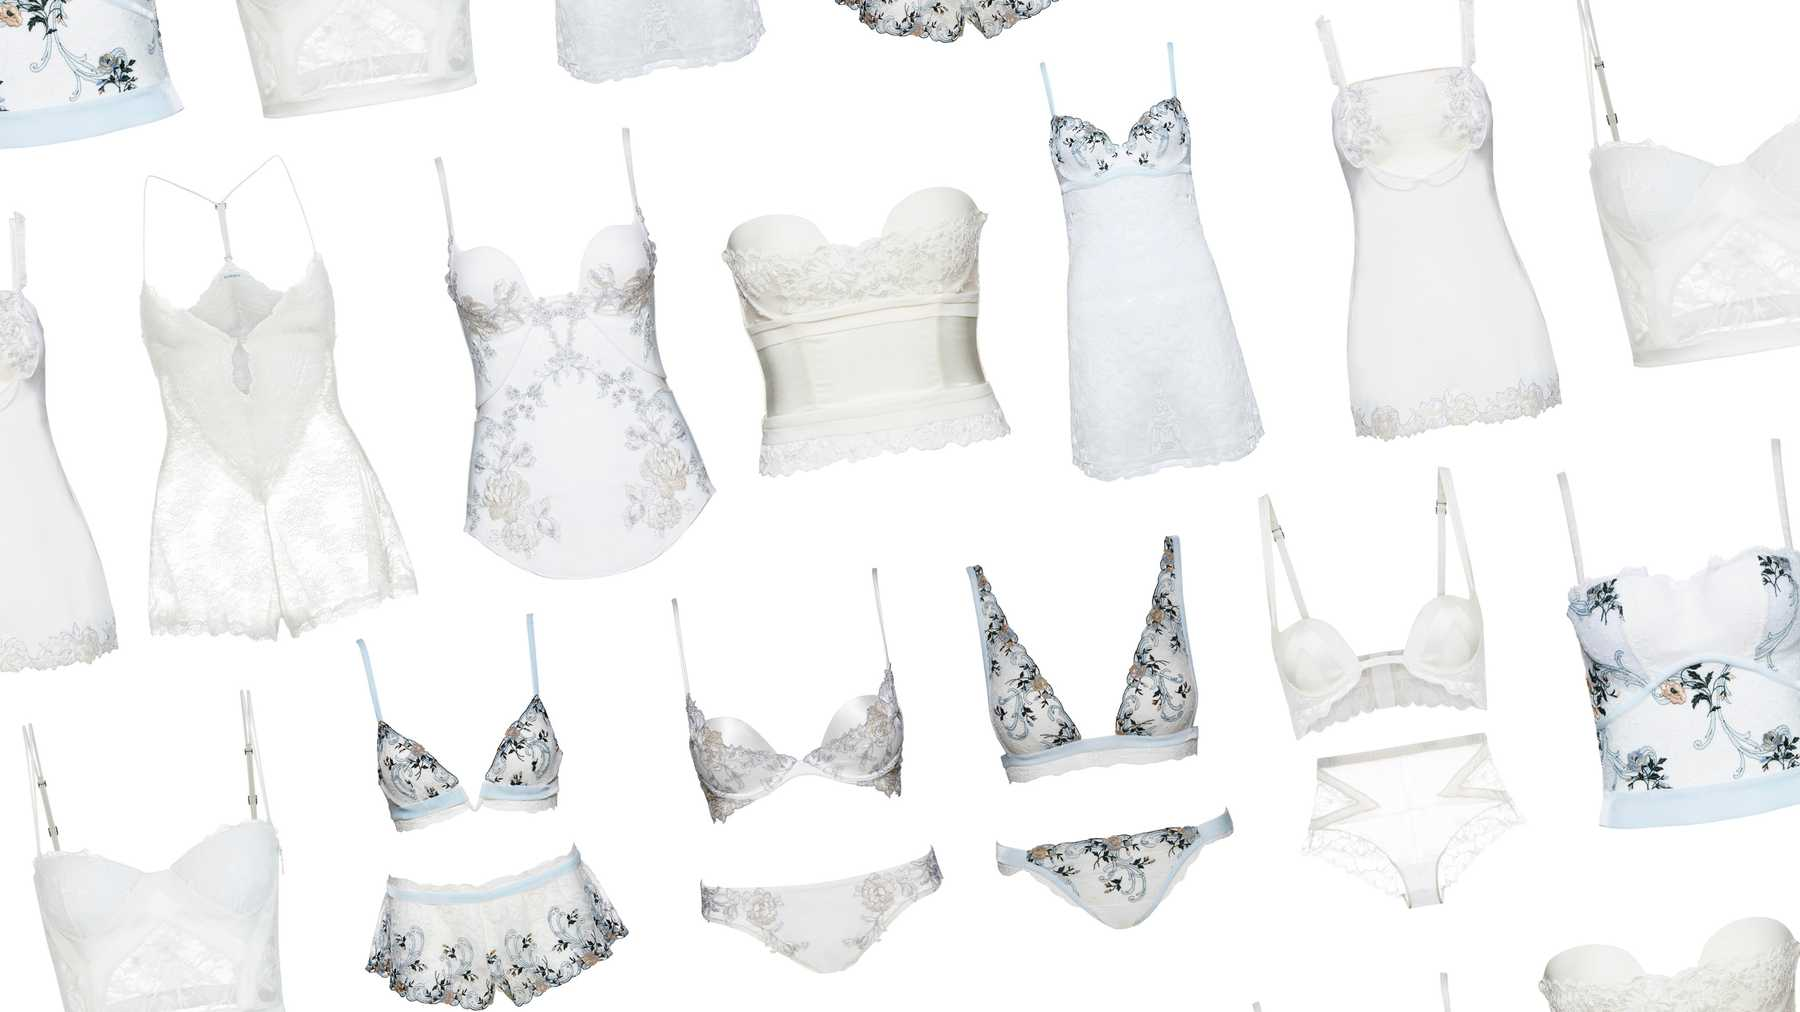 f70029cff2f How To Choose The Prettiest Bridal Underwear For Your Wedding Day ...